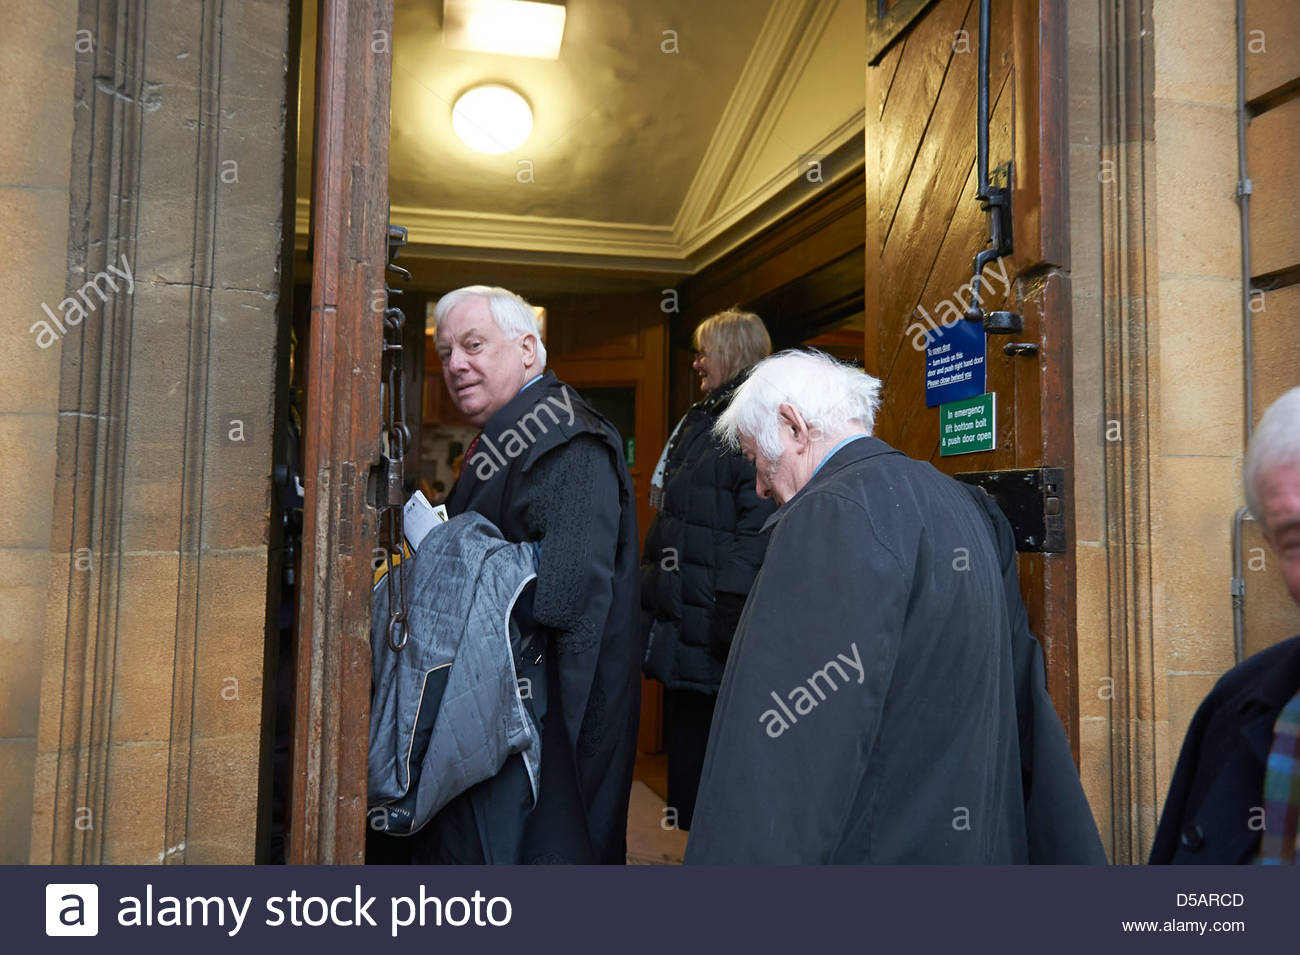 Lord Patten entering Sheldonian Theatre at The Oxford Literary Festival 2013 Geraint Lewis - Stock Image